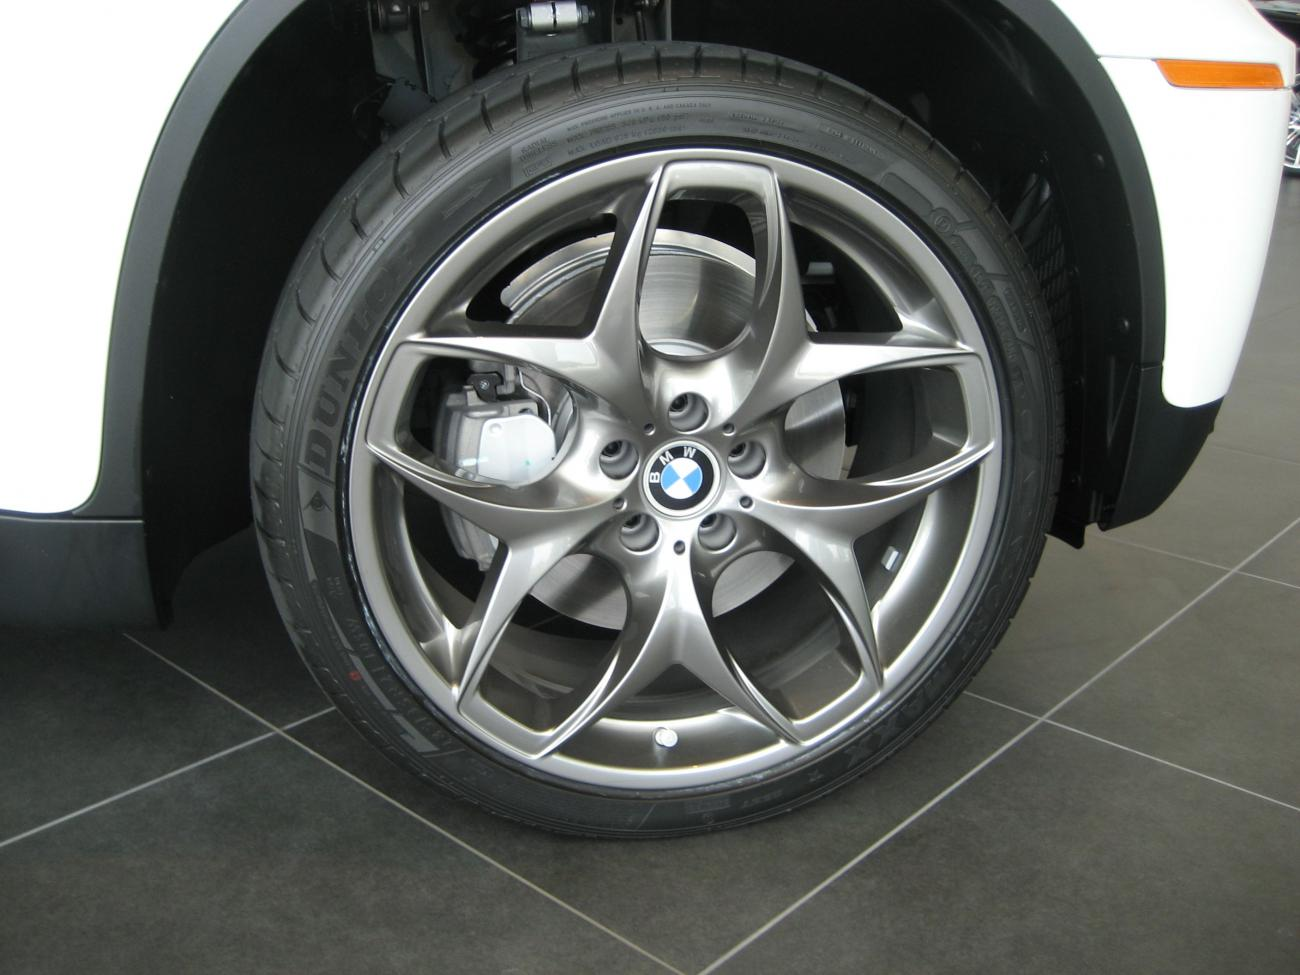 Discount Tire Wheels and Rims